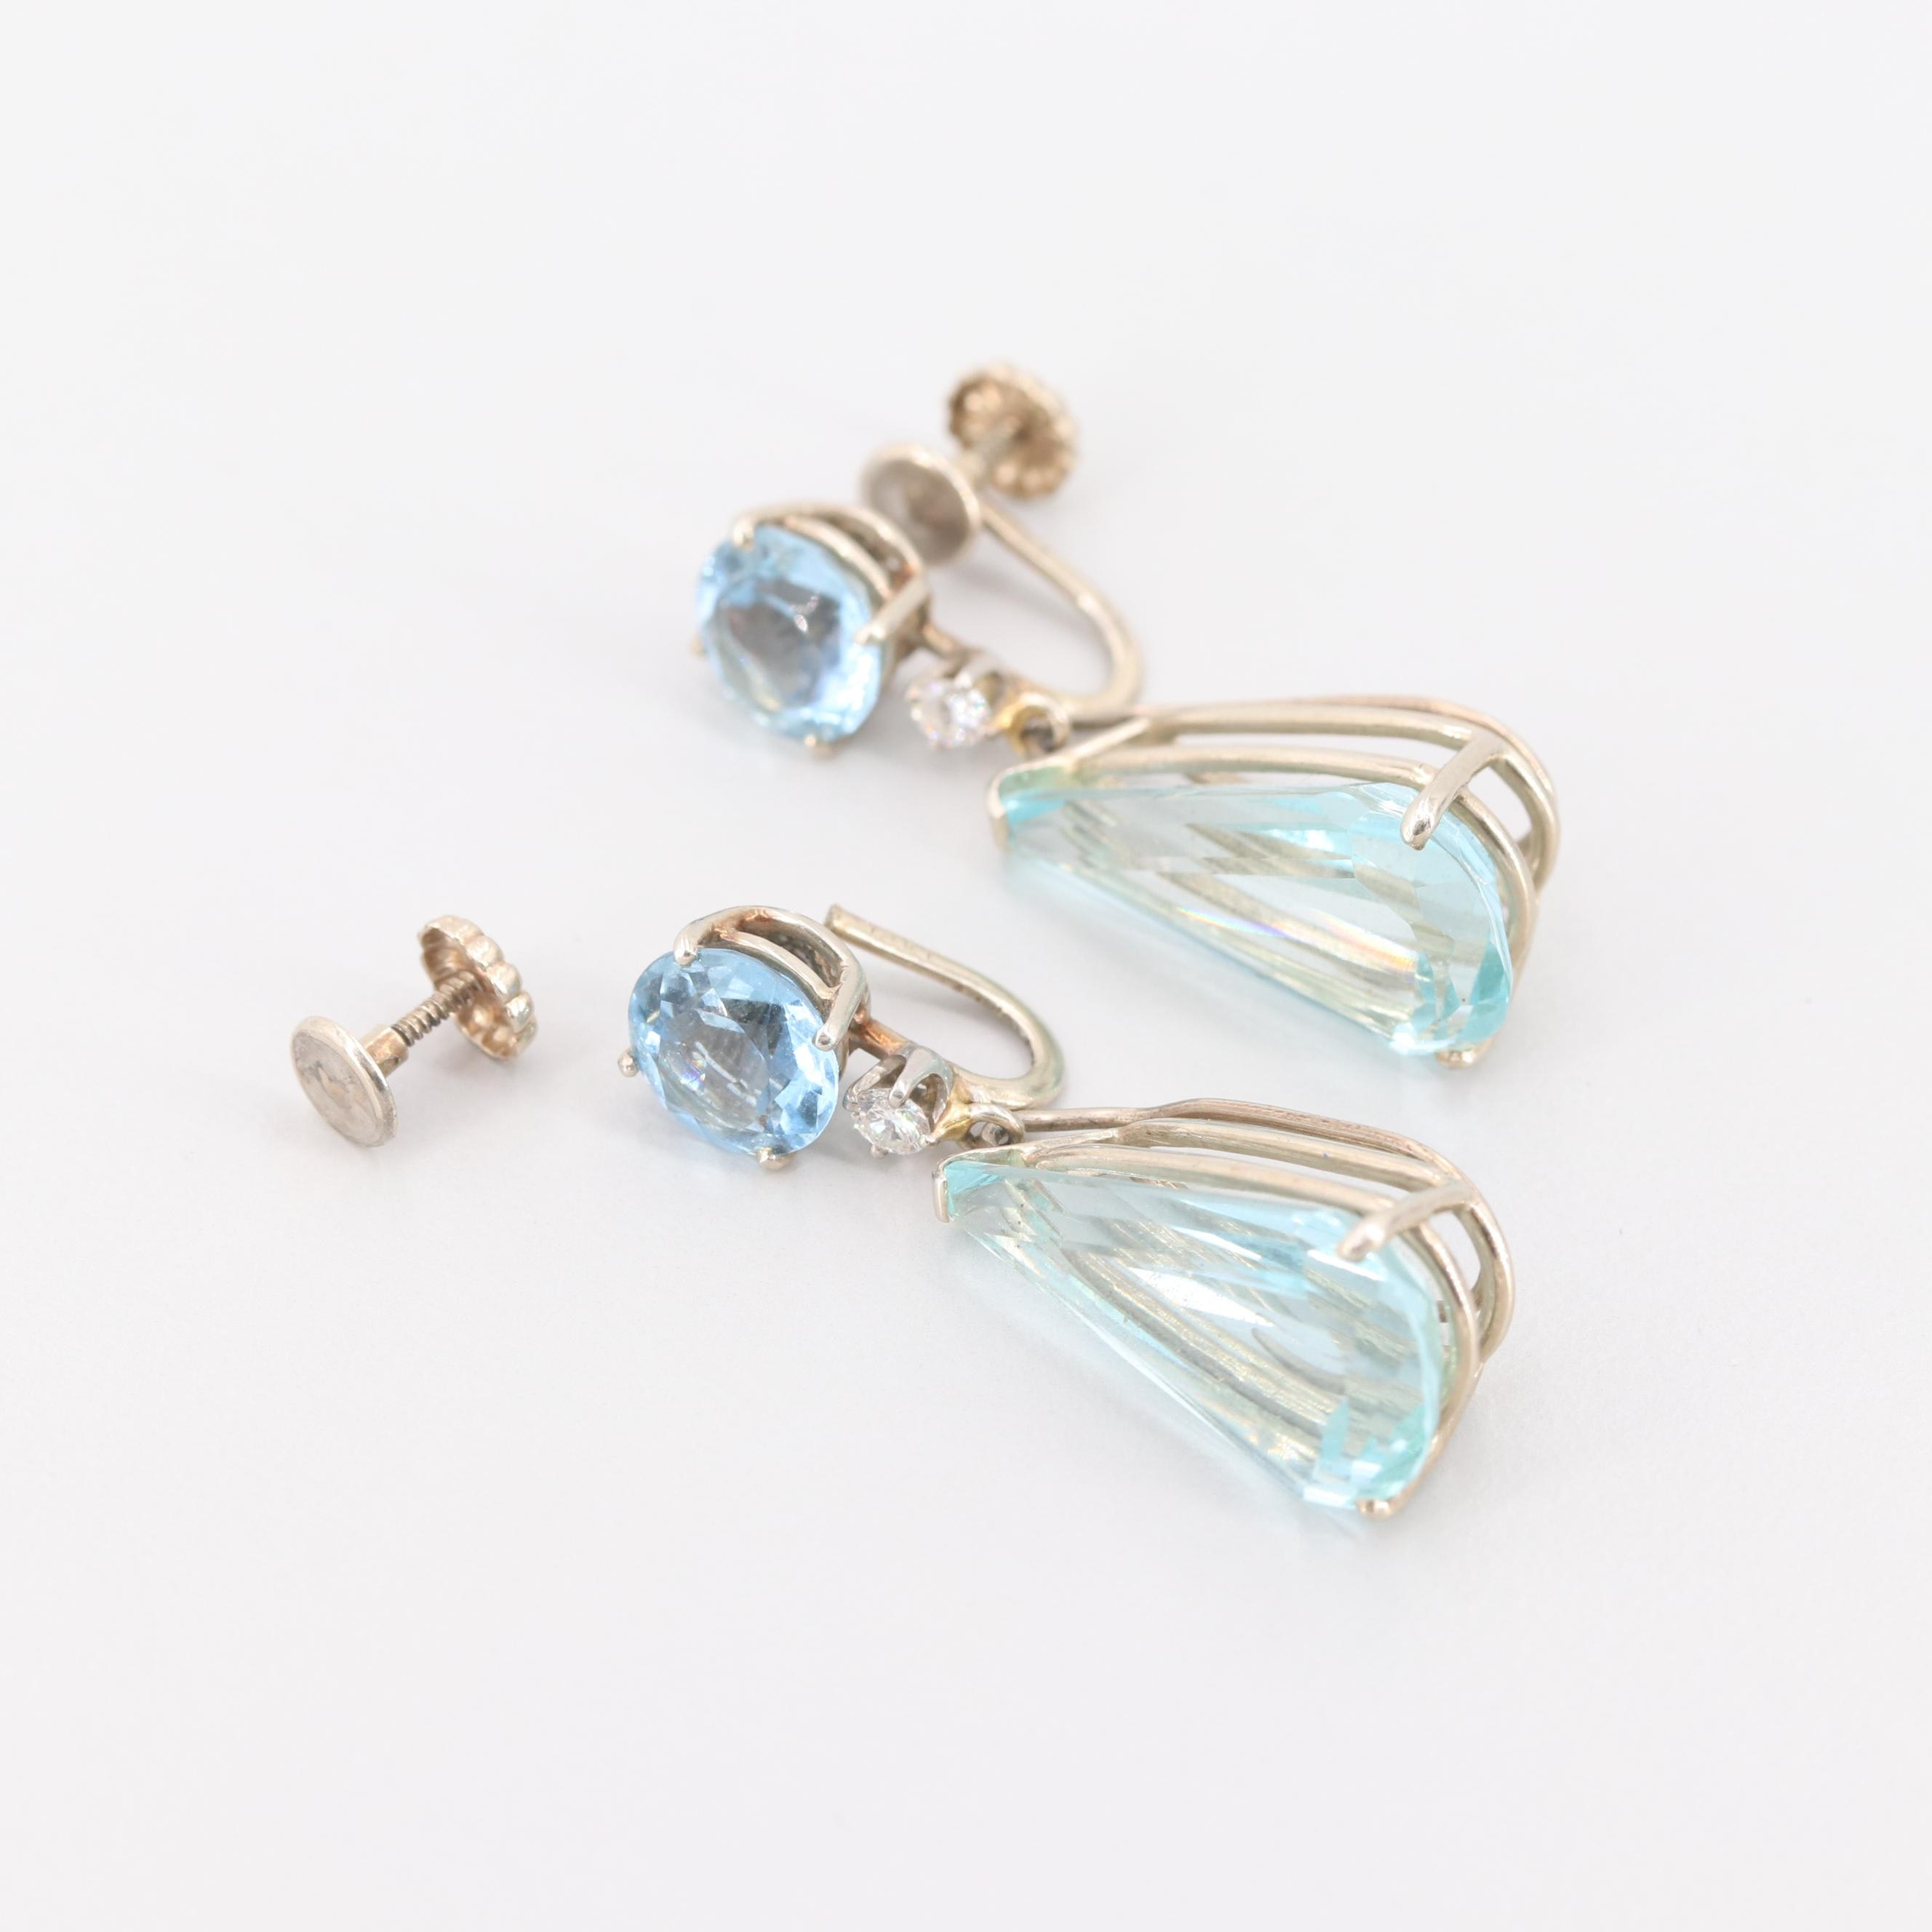 14K White Gold Aquamarine and Diamond Earrings with Removable Dangles